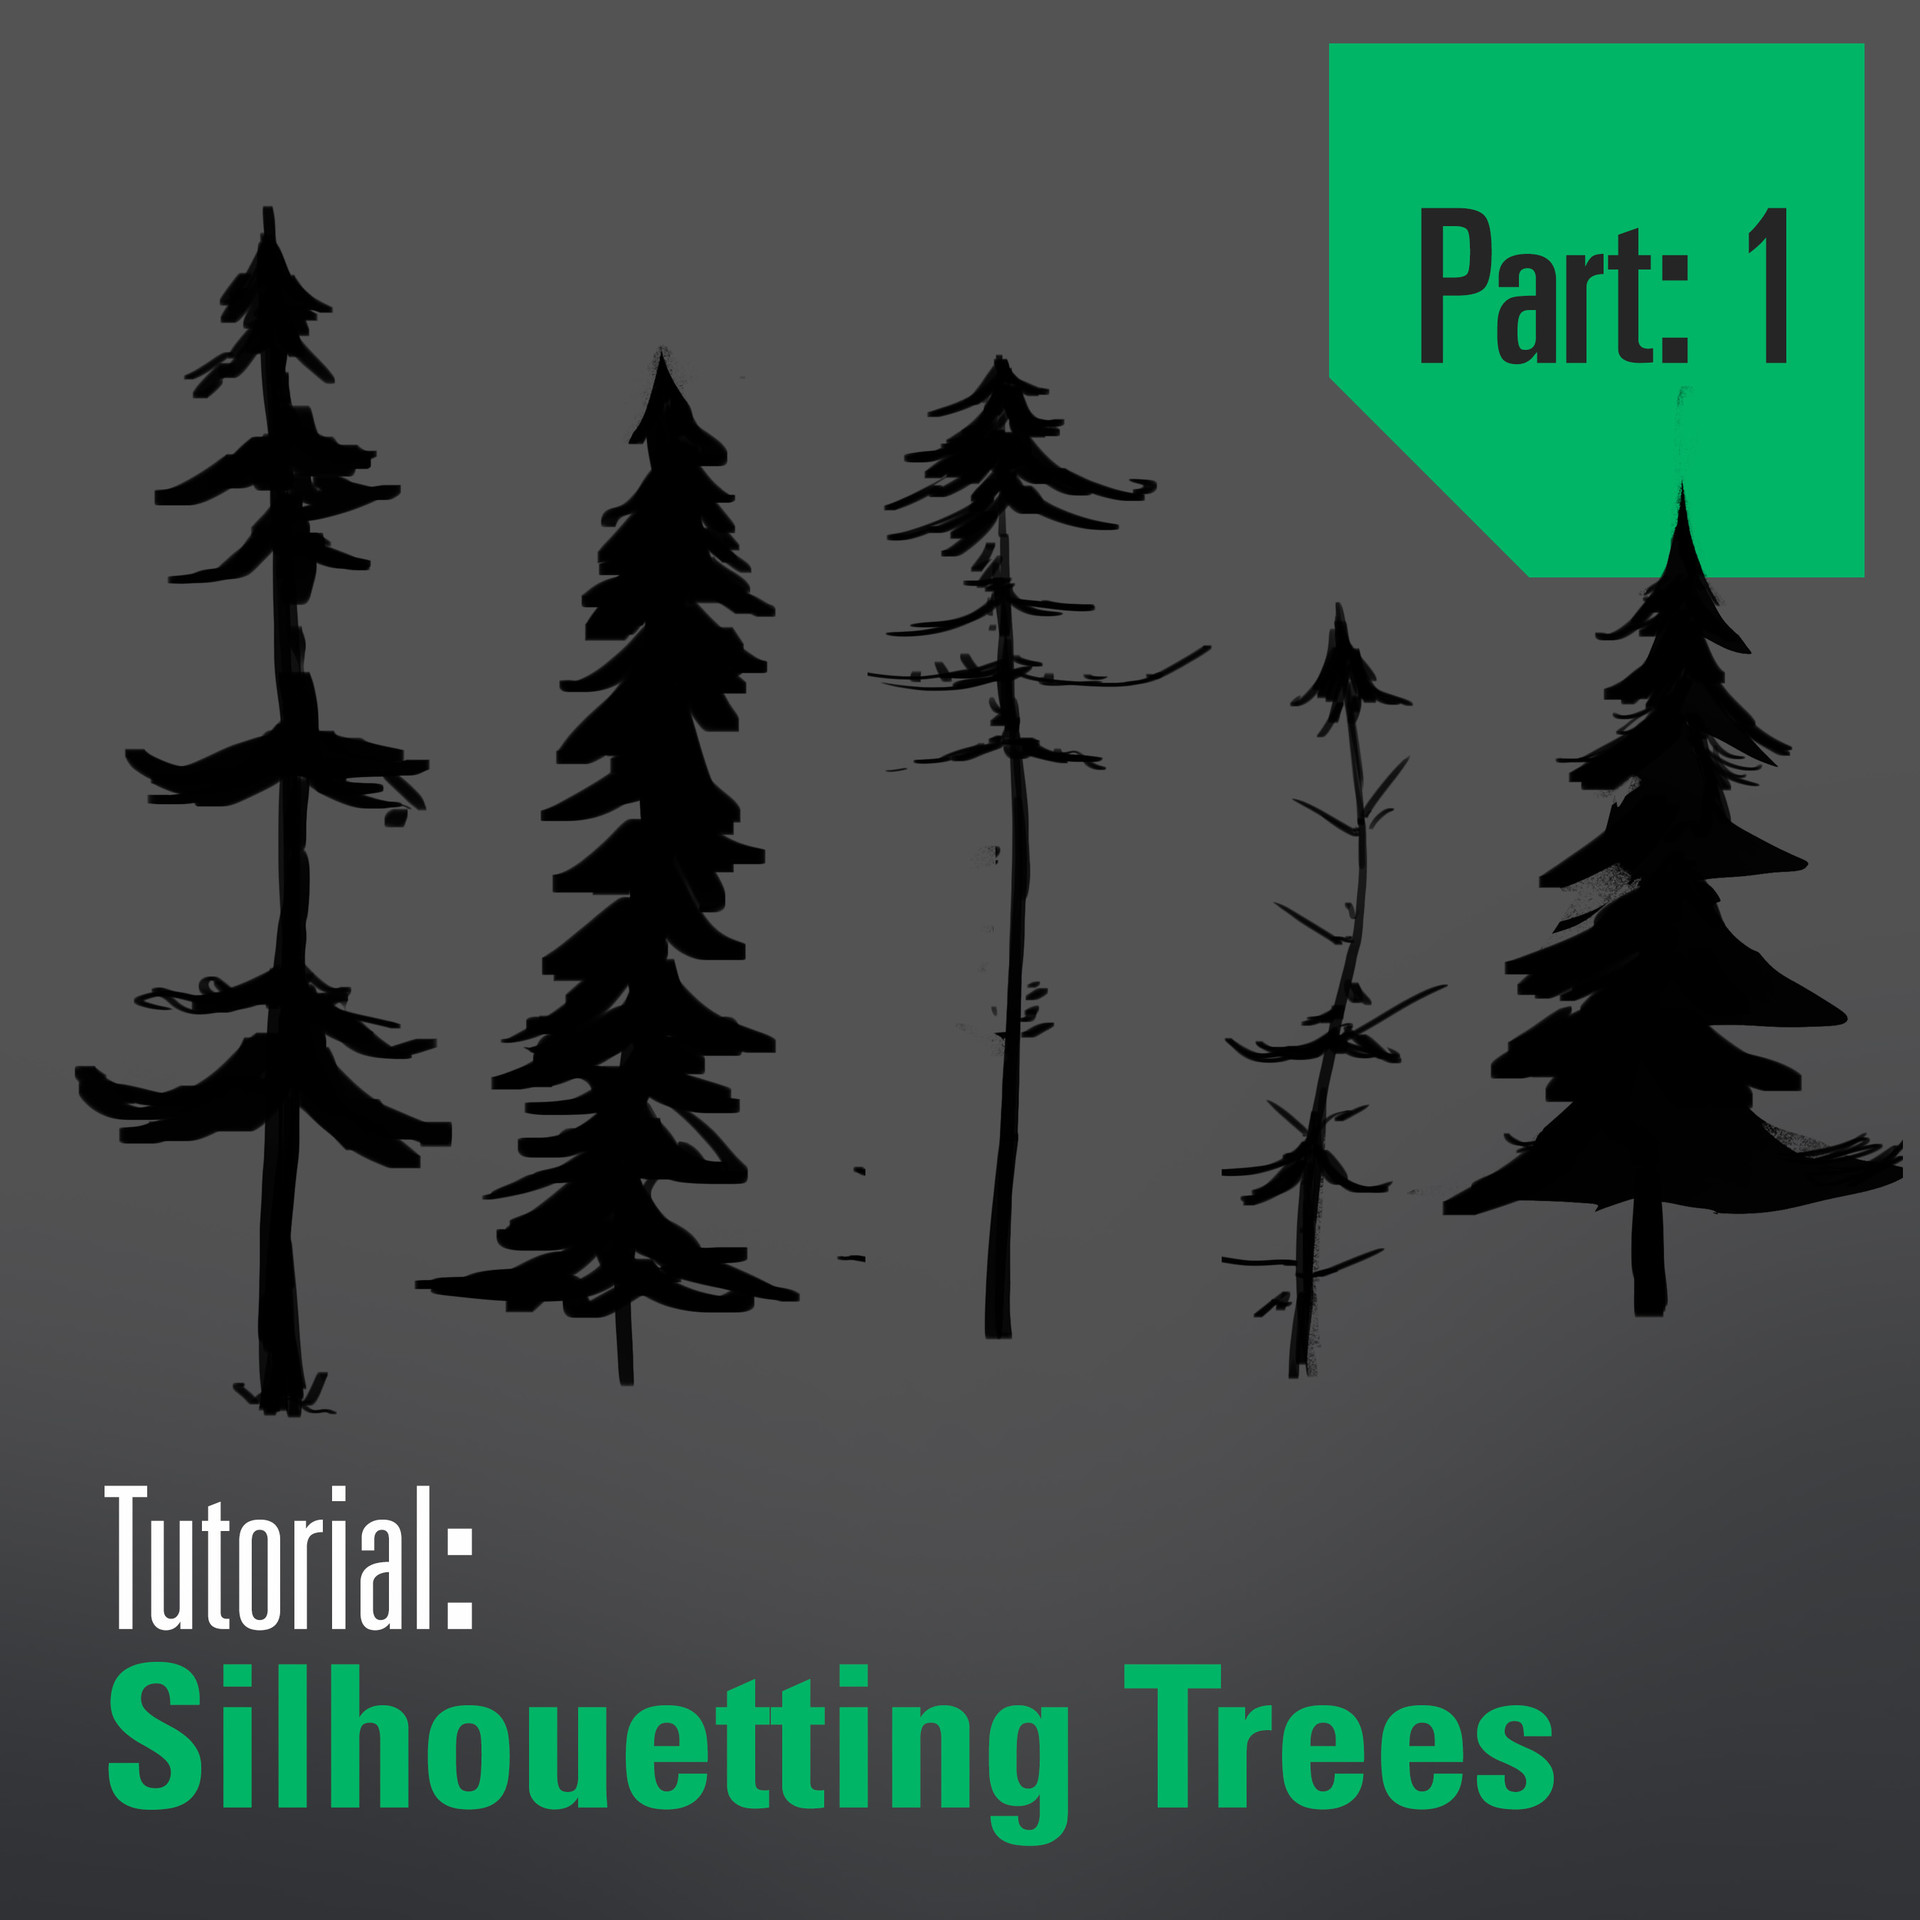 Tutorial - Drawing and Designing Trees - Part 1